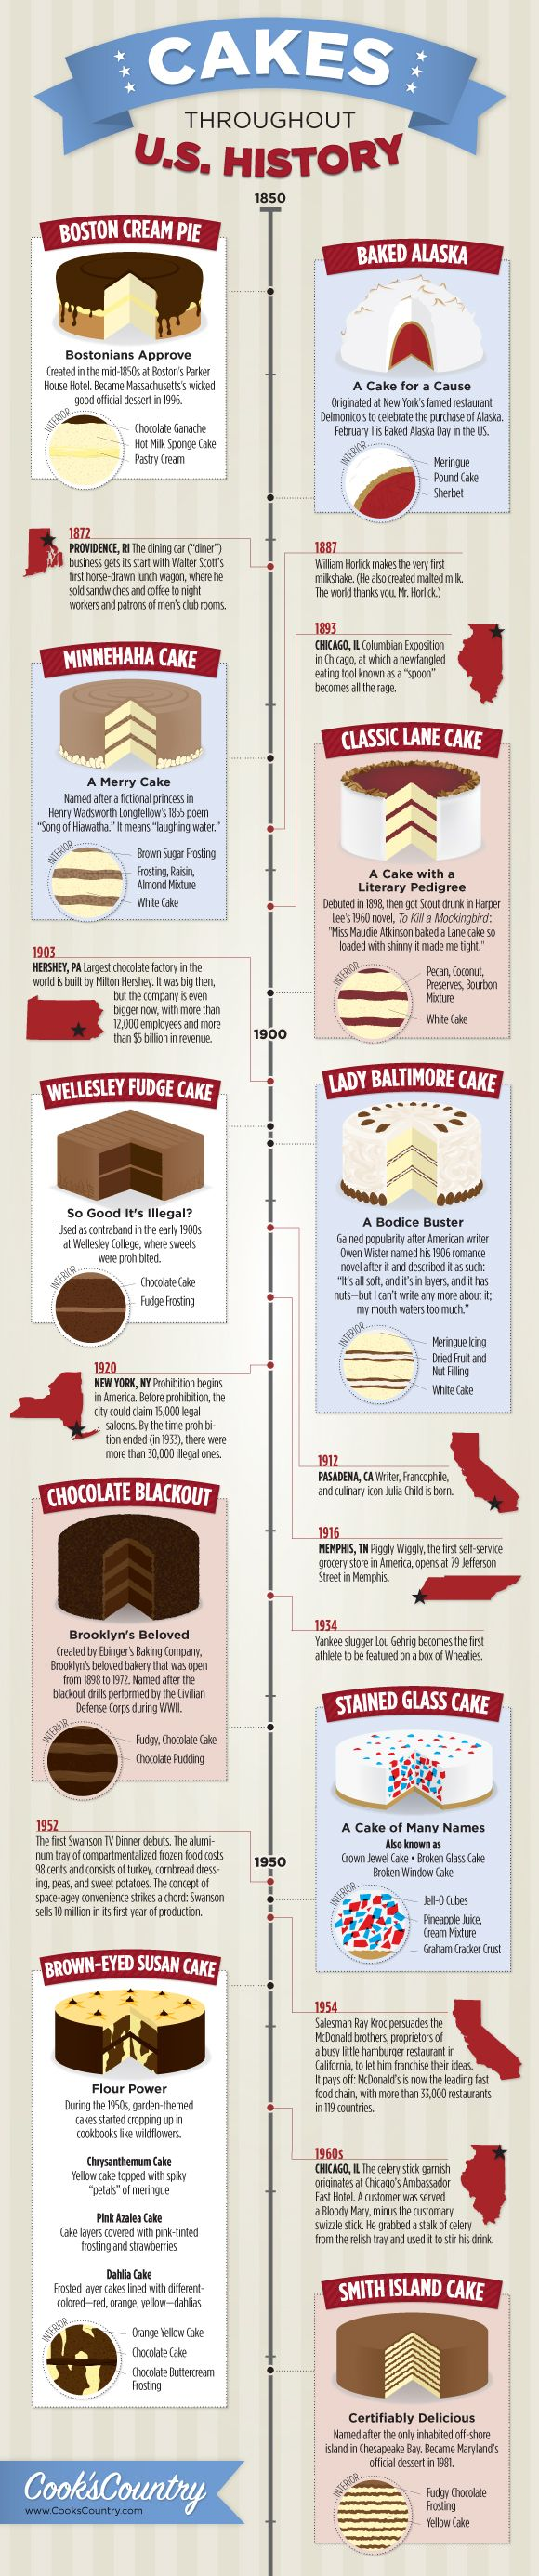 The History of the US as told through cakes!